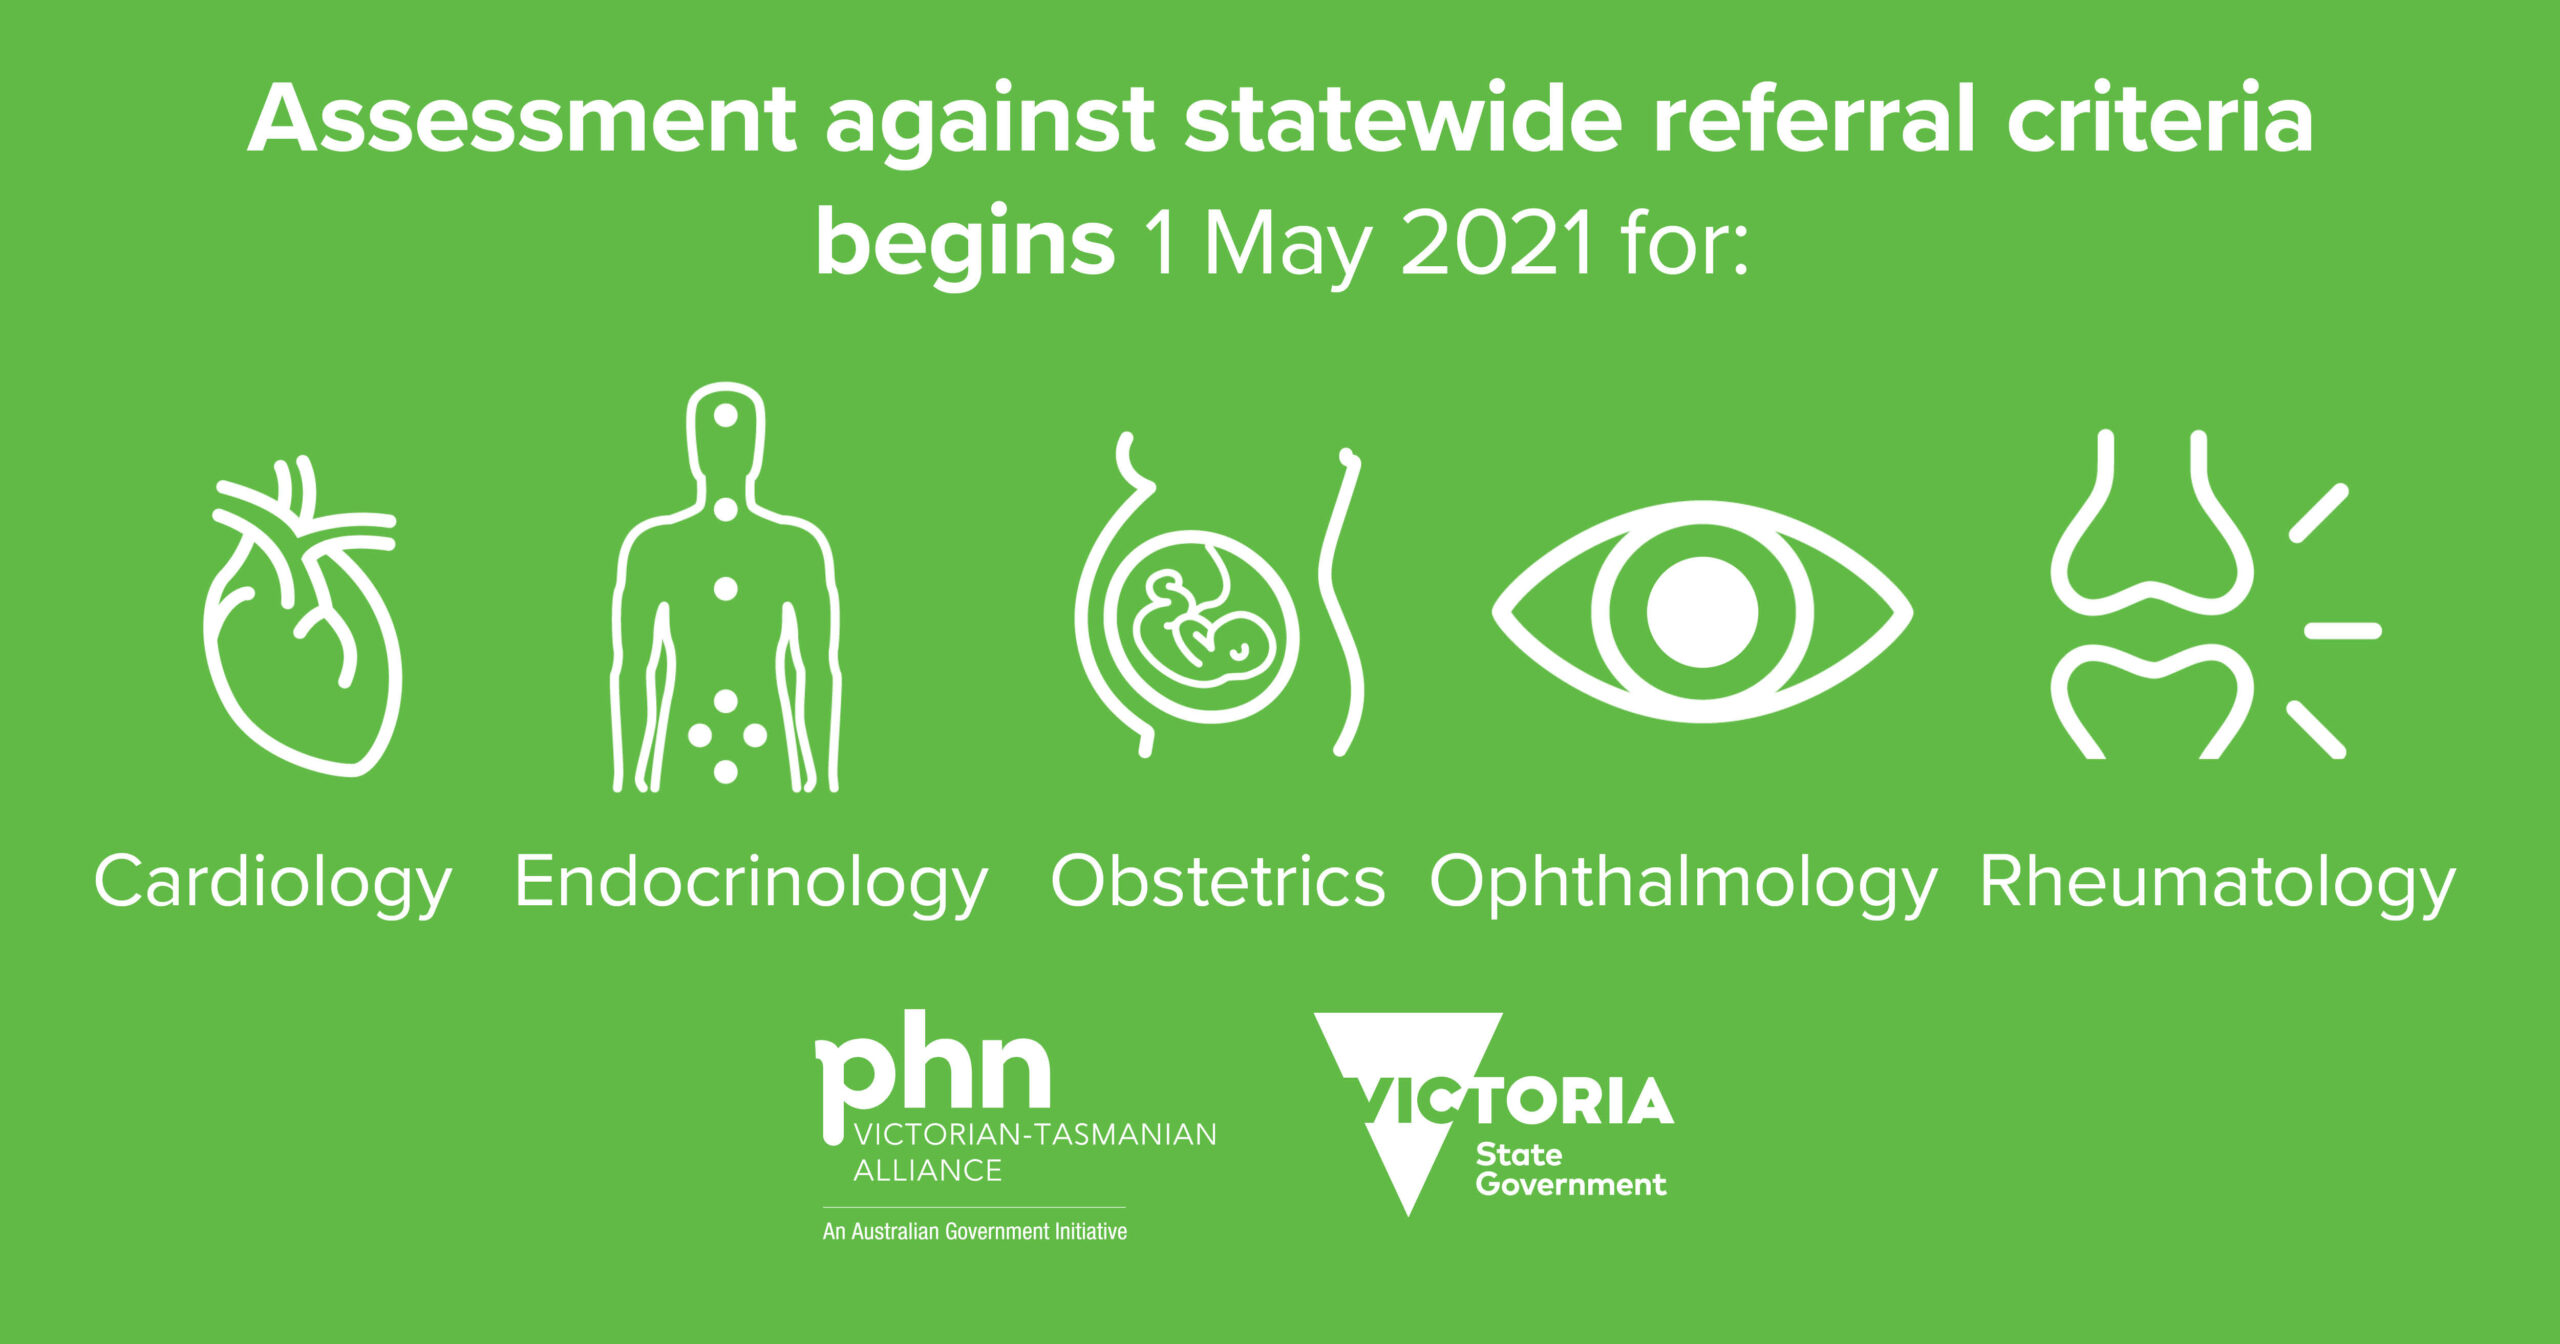 Promotional image for the batch of statewide referral criteria referred to in the article on this page.